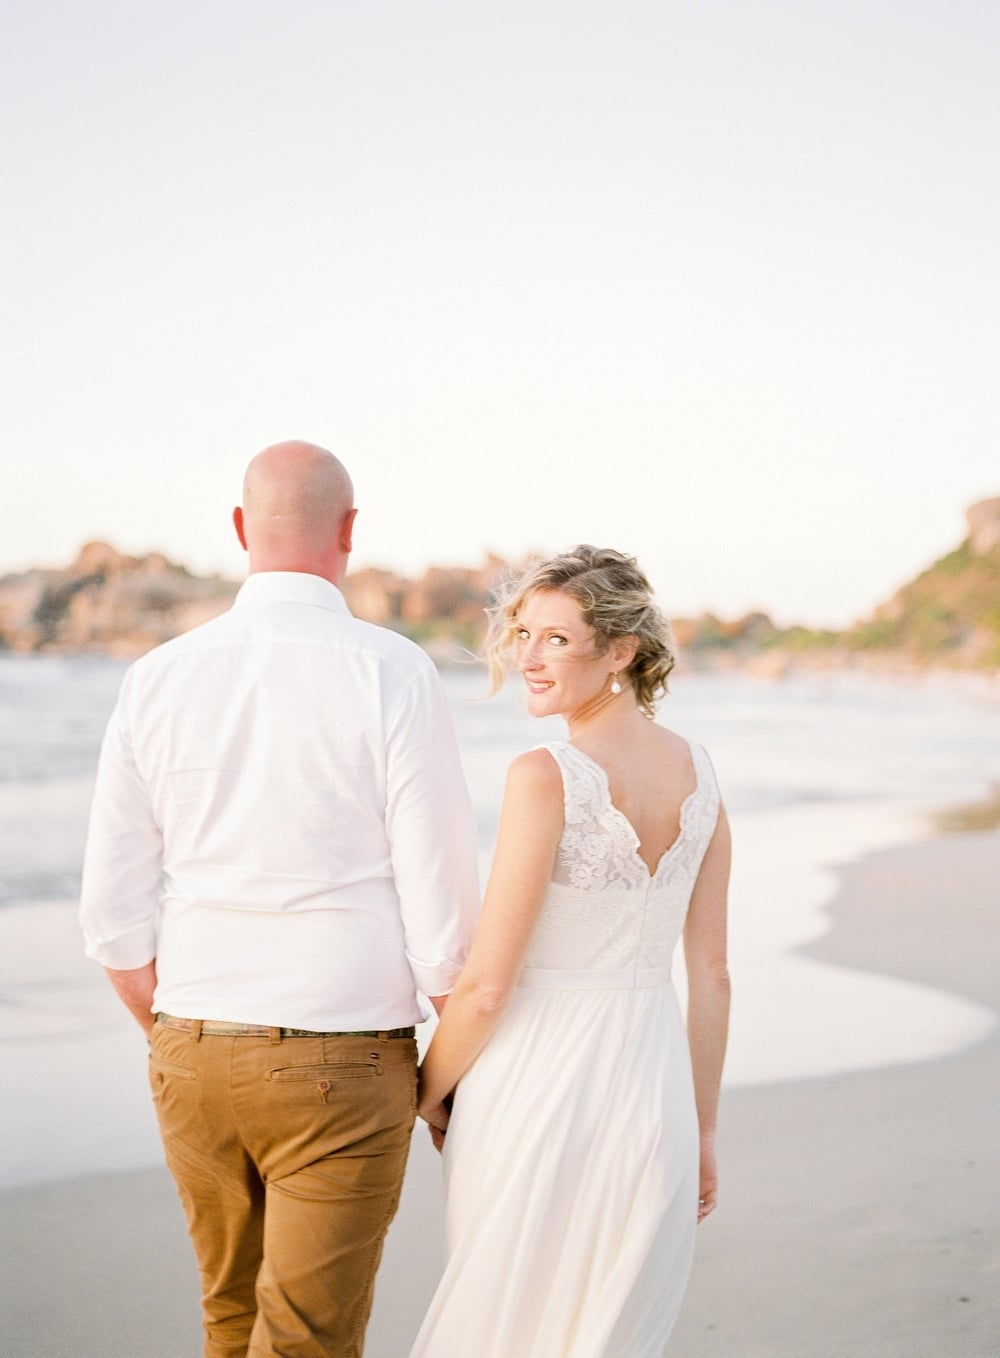 Amanda-Drost-photography-travel-wanderlust-South-Africa-cape-town-elopement-nederland-trouwen-bruiloft_0035.jpg